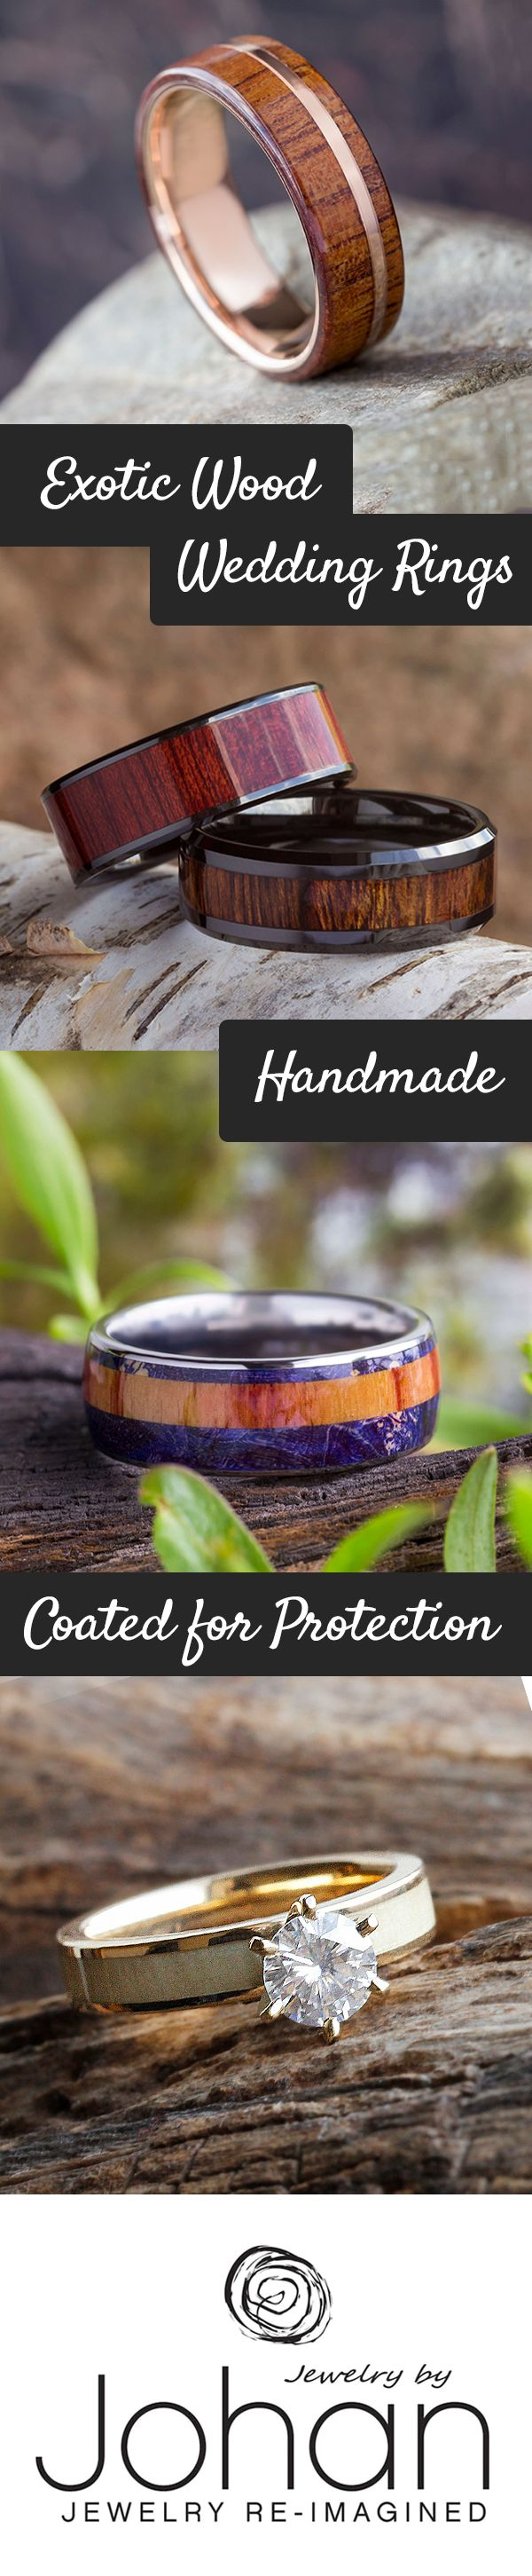 Wood wedding bands boast an abundance of natural beauty and style.